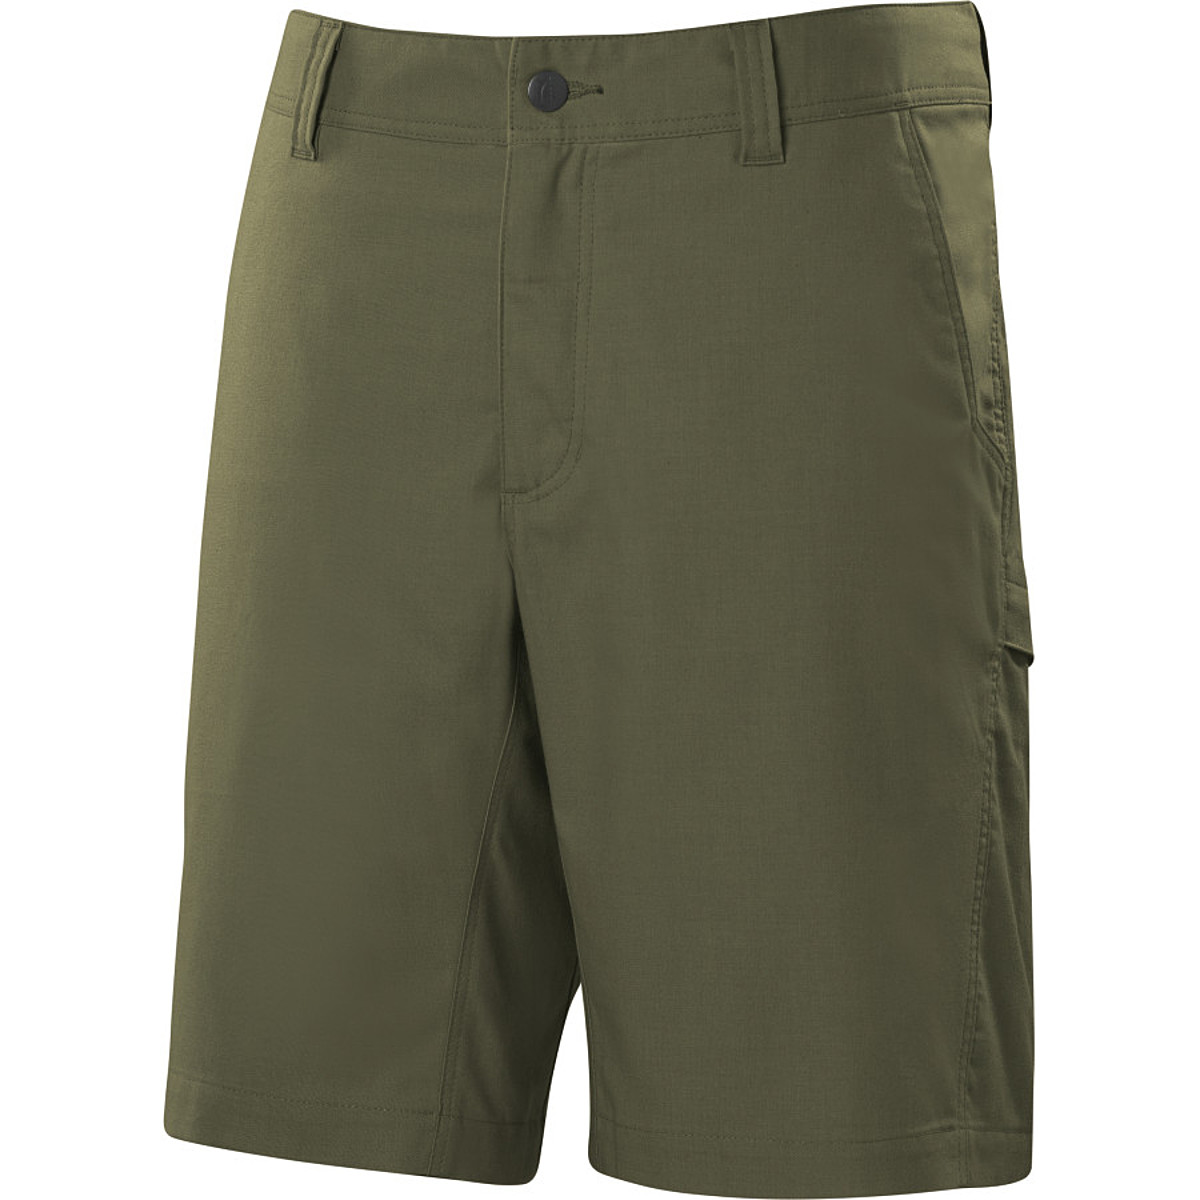 Sierra Designs Dricanvas Short